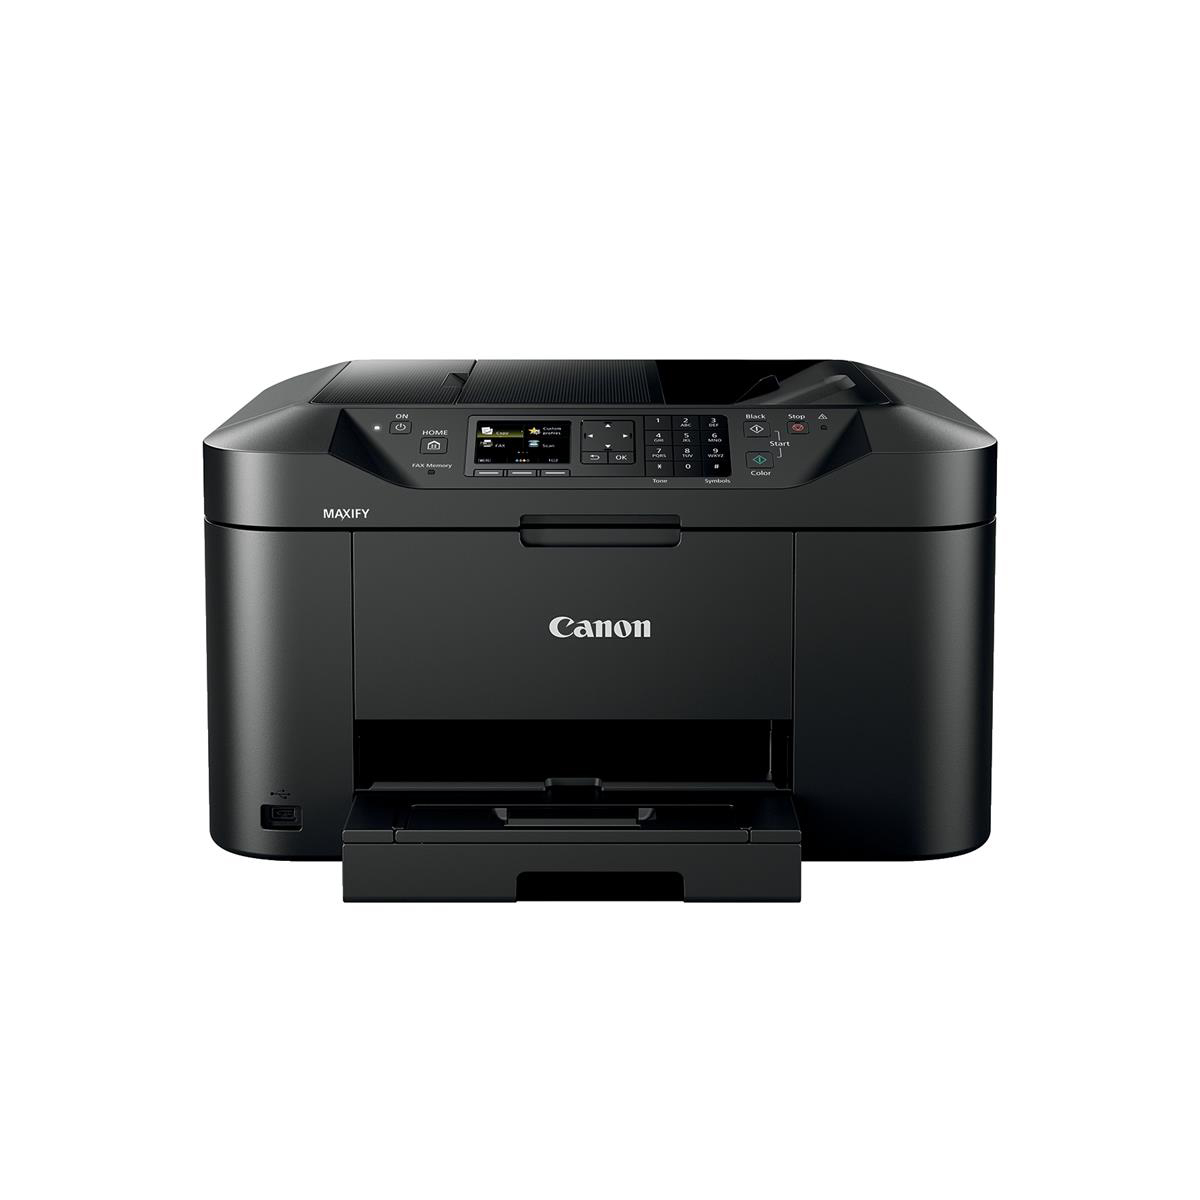 Canon Maxify MB2155 Colour A4 Inkjet Multifunction Printer Ref 0959C028AA